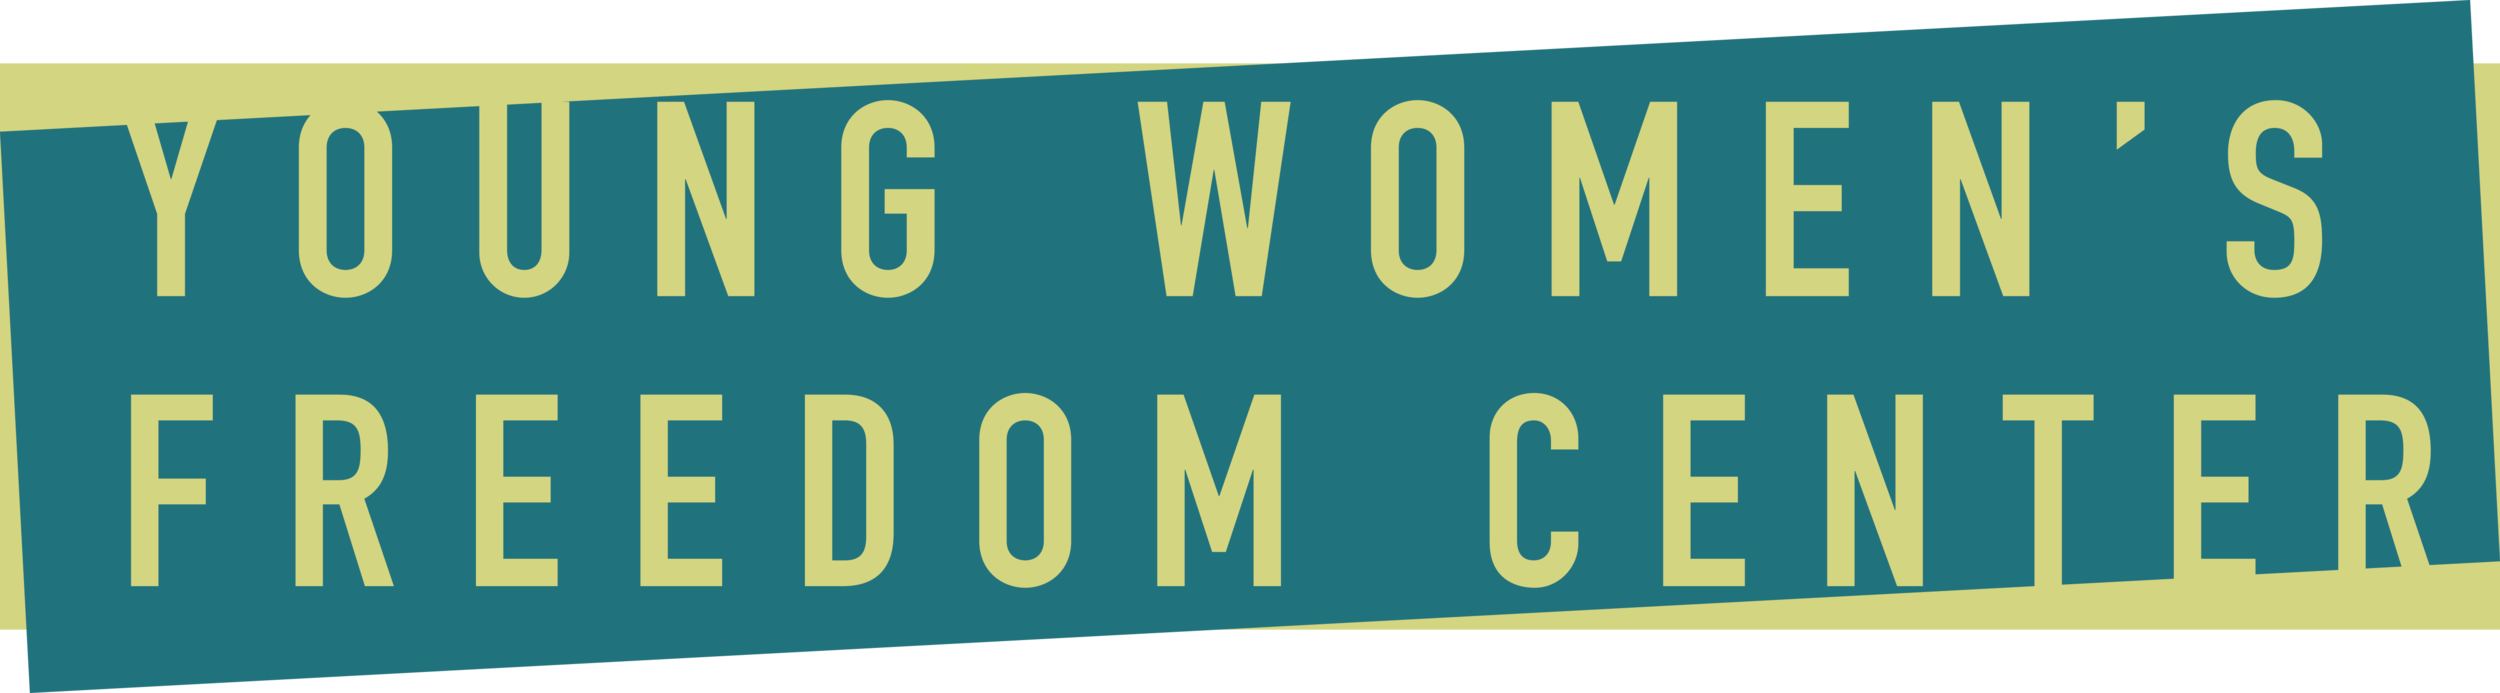 Young Women's Freedom Center Logo.png